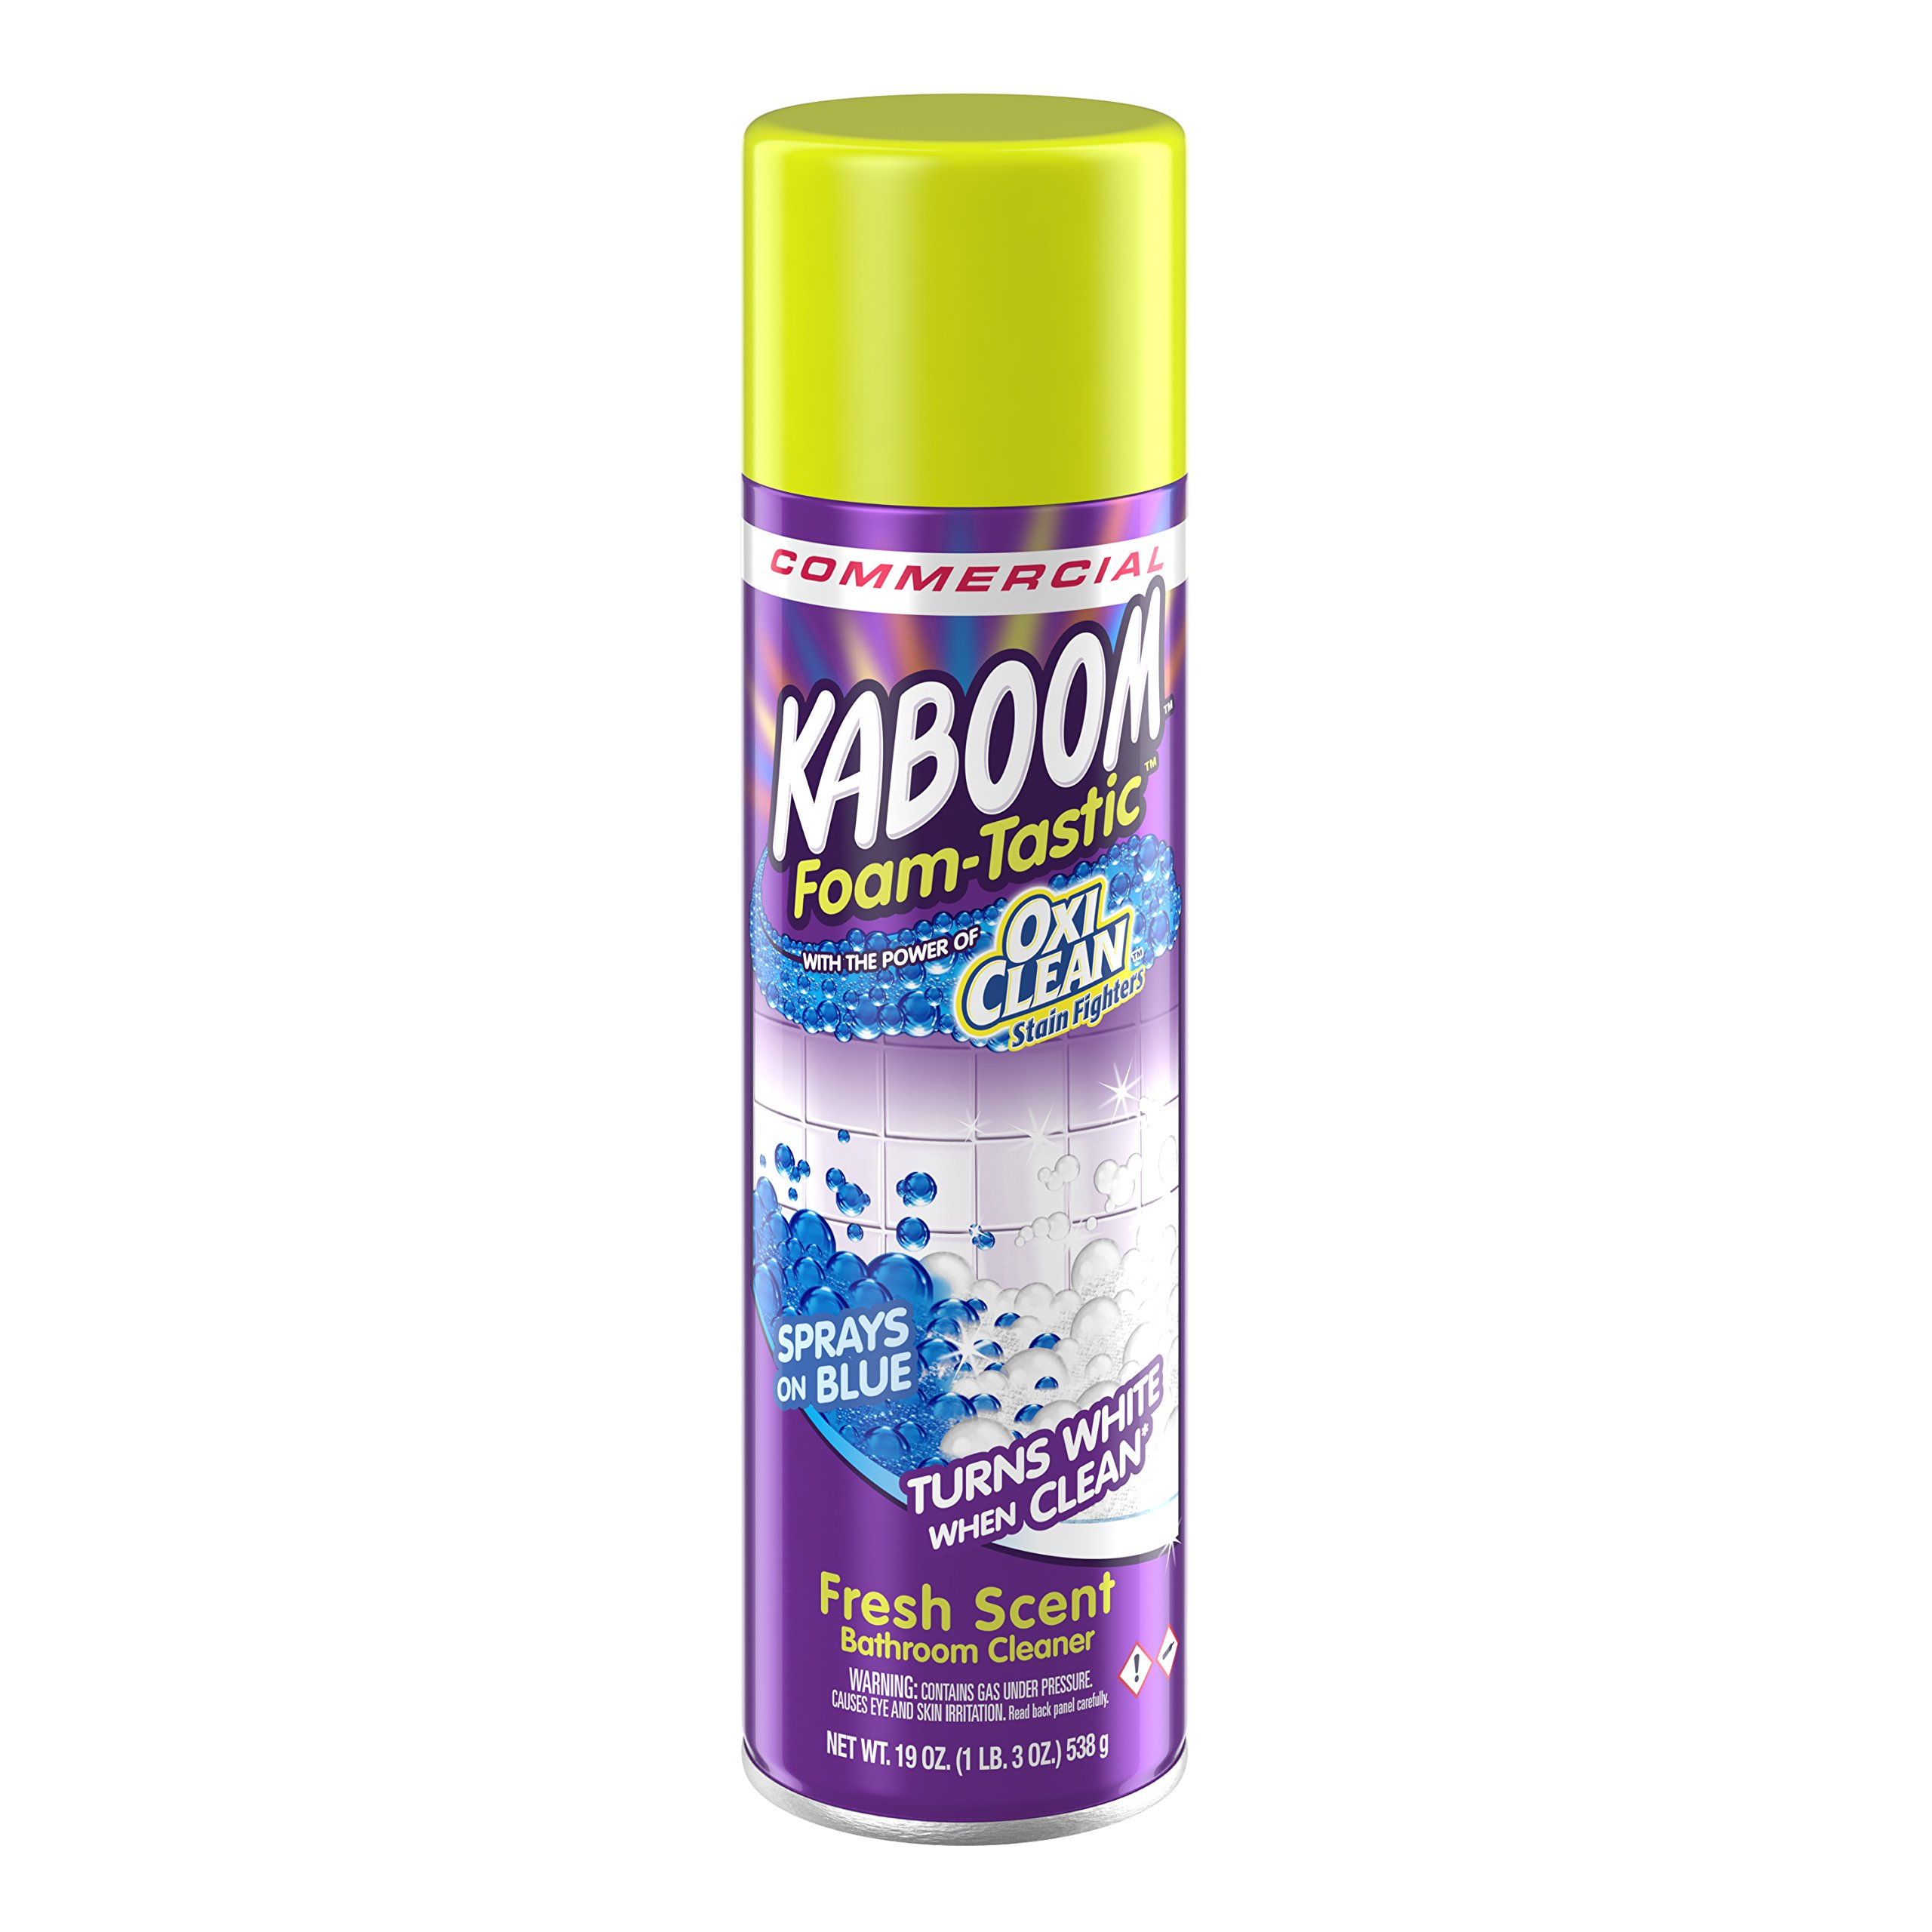 Arm & Hammer 57037-35270 Kaboom Foam-Tastic with OxiClean Fresh Scent, 19 oz (Pack of 8)